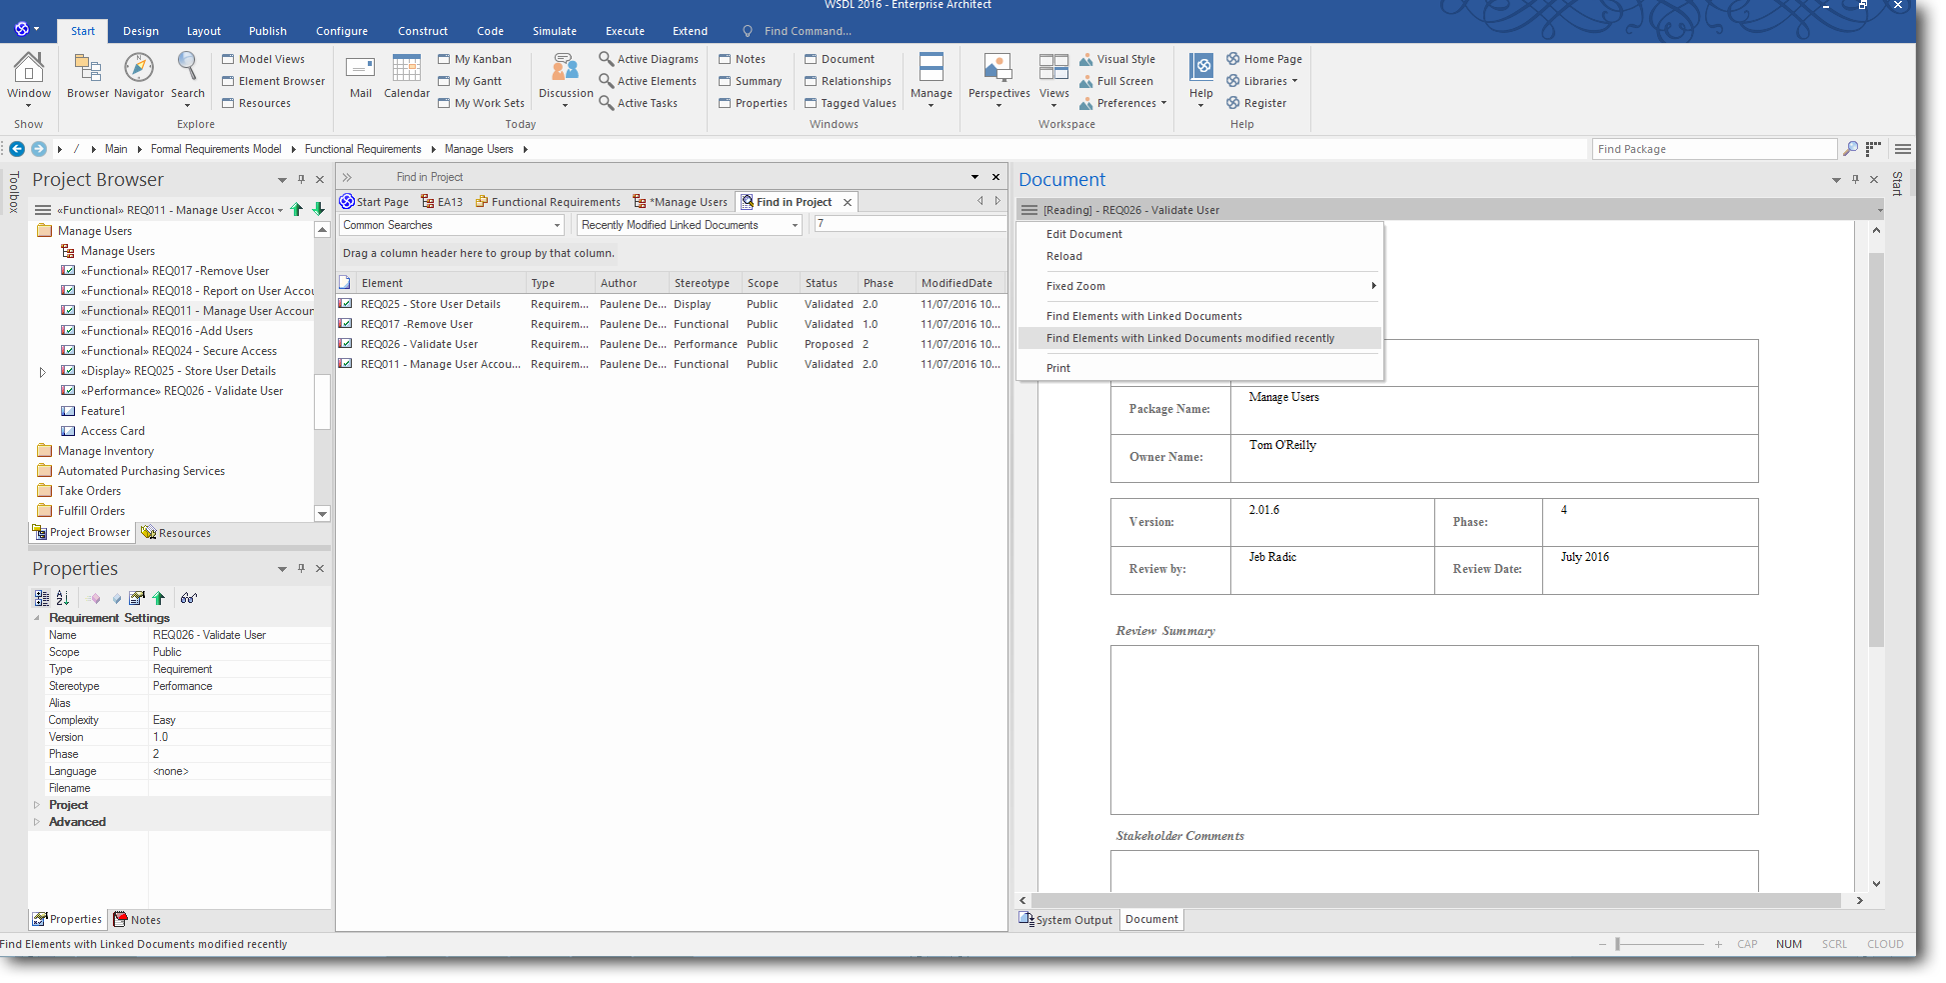 Enterprise Architect 13: Searches and Charts - Document View